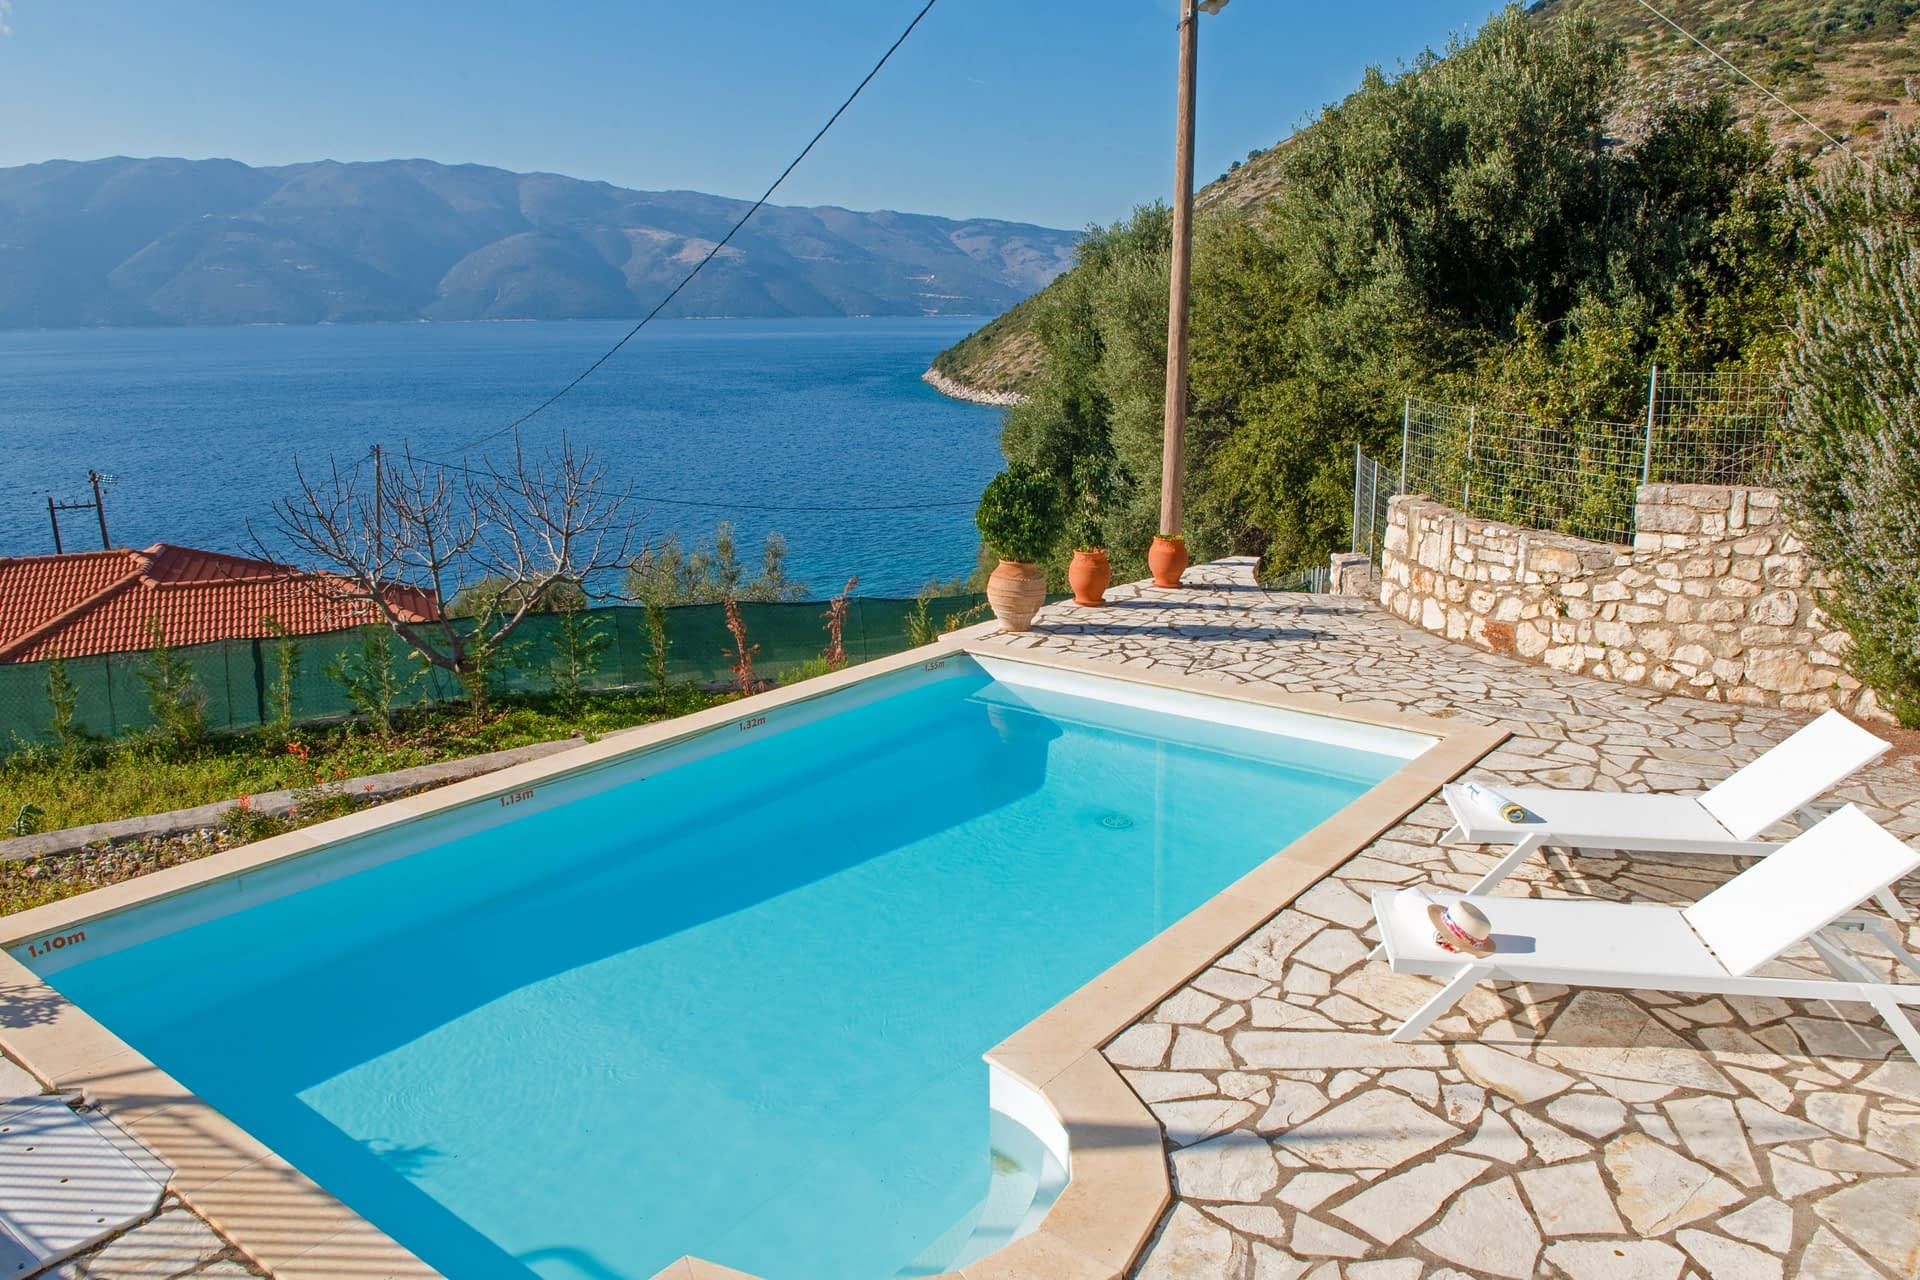 Swimming pool and view of house for rent in Ithaca Greece, Piso Aetos